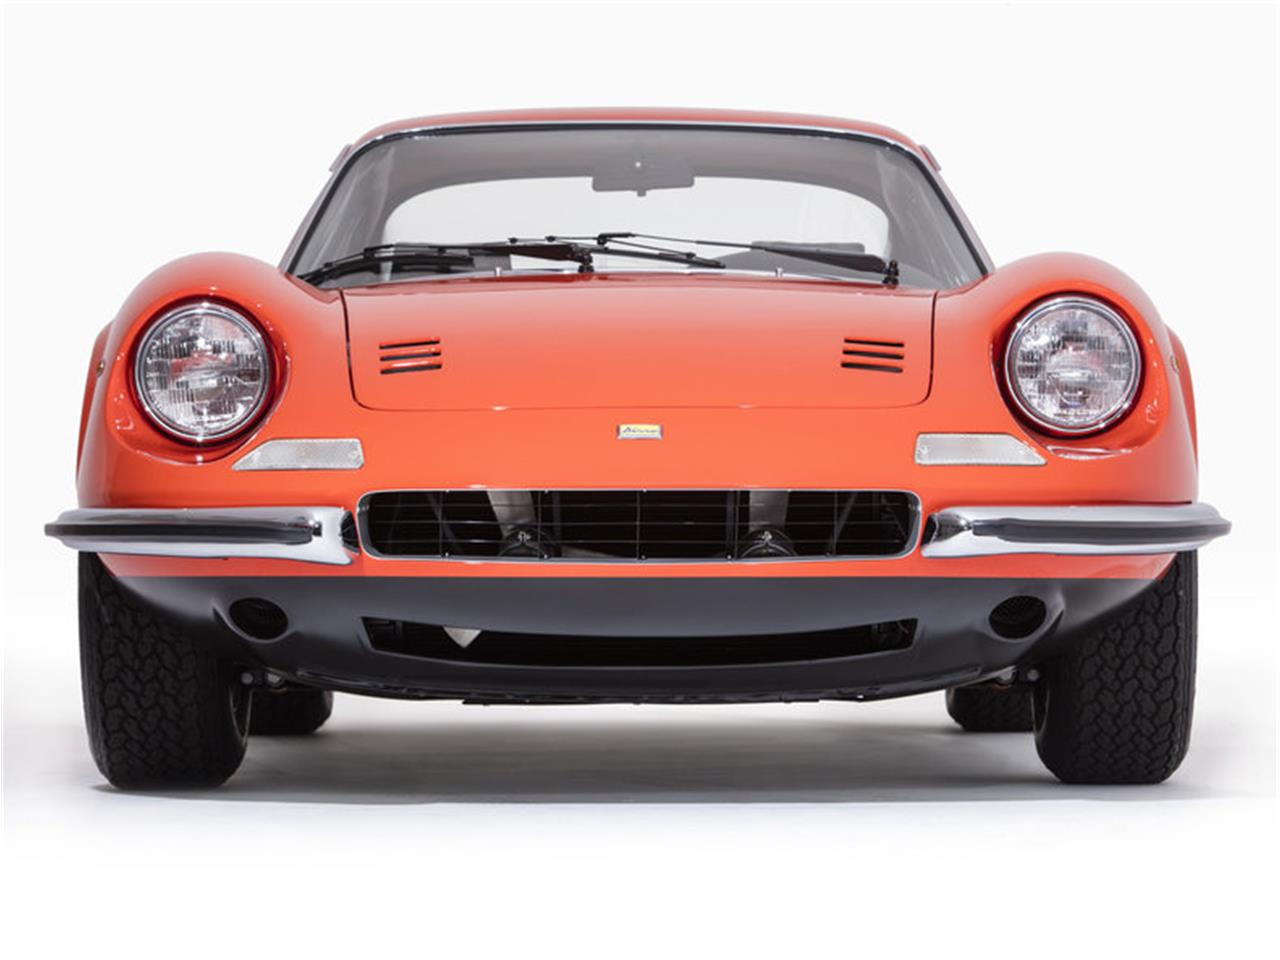 Large Picture of Classic '73 Ferrari 246 GT located in Newport Beach California Offered by Morris and Welford - MZAD